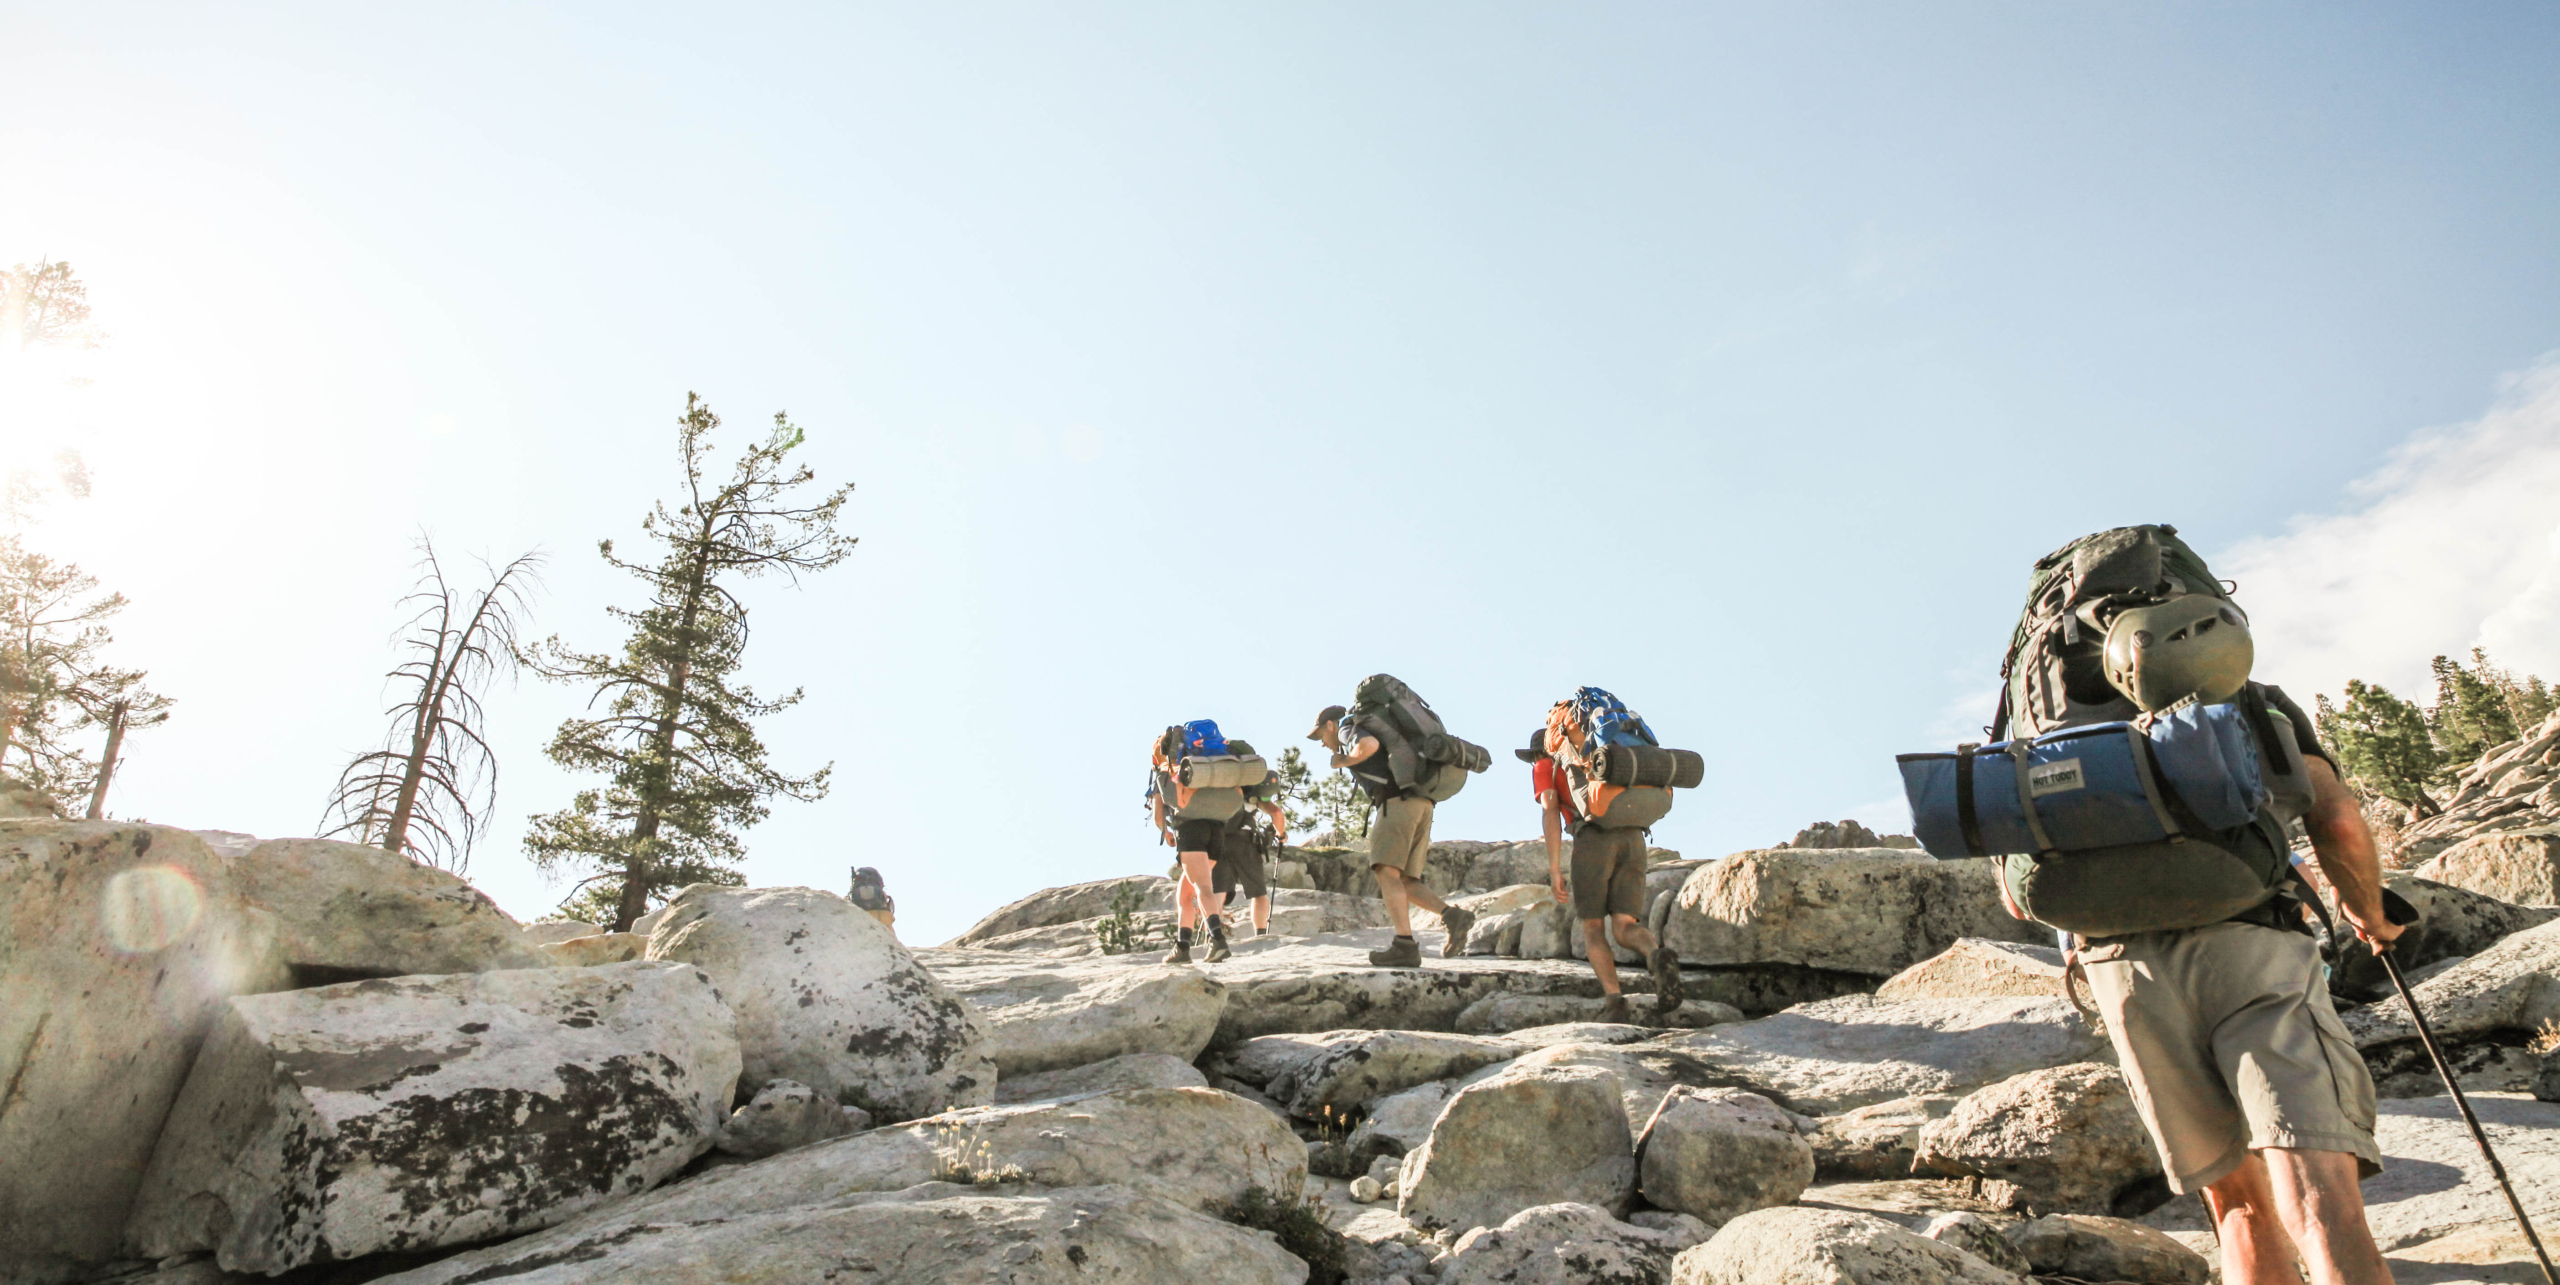 Summit Adventure Men's Life Renewal Backpacking Course